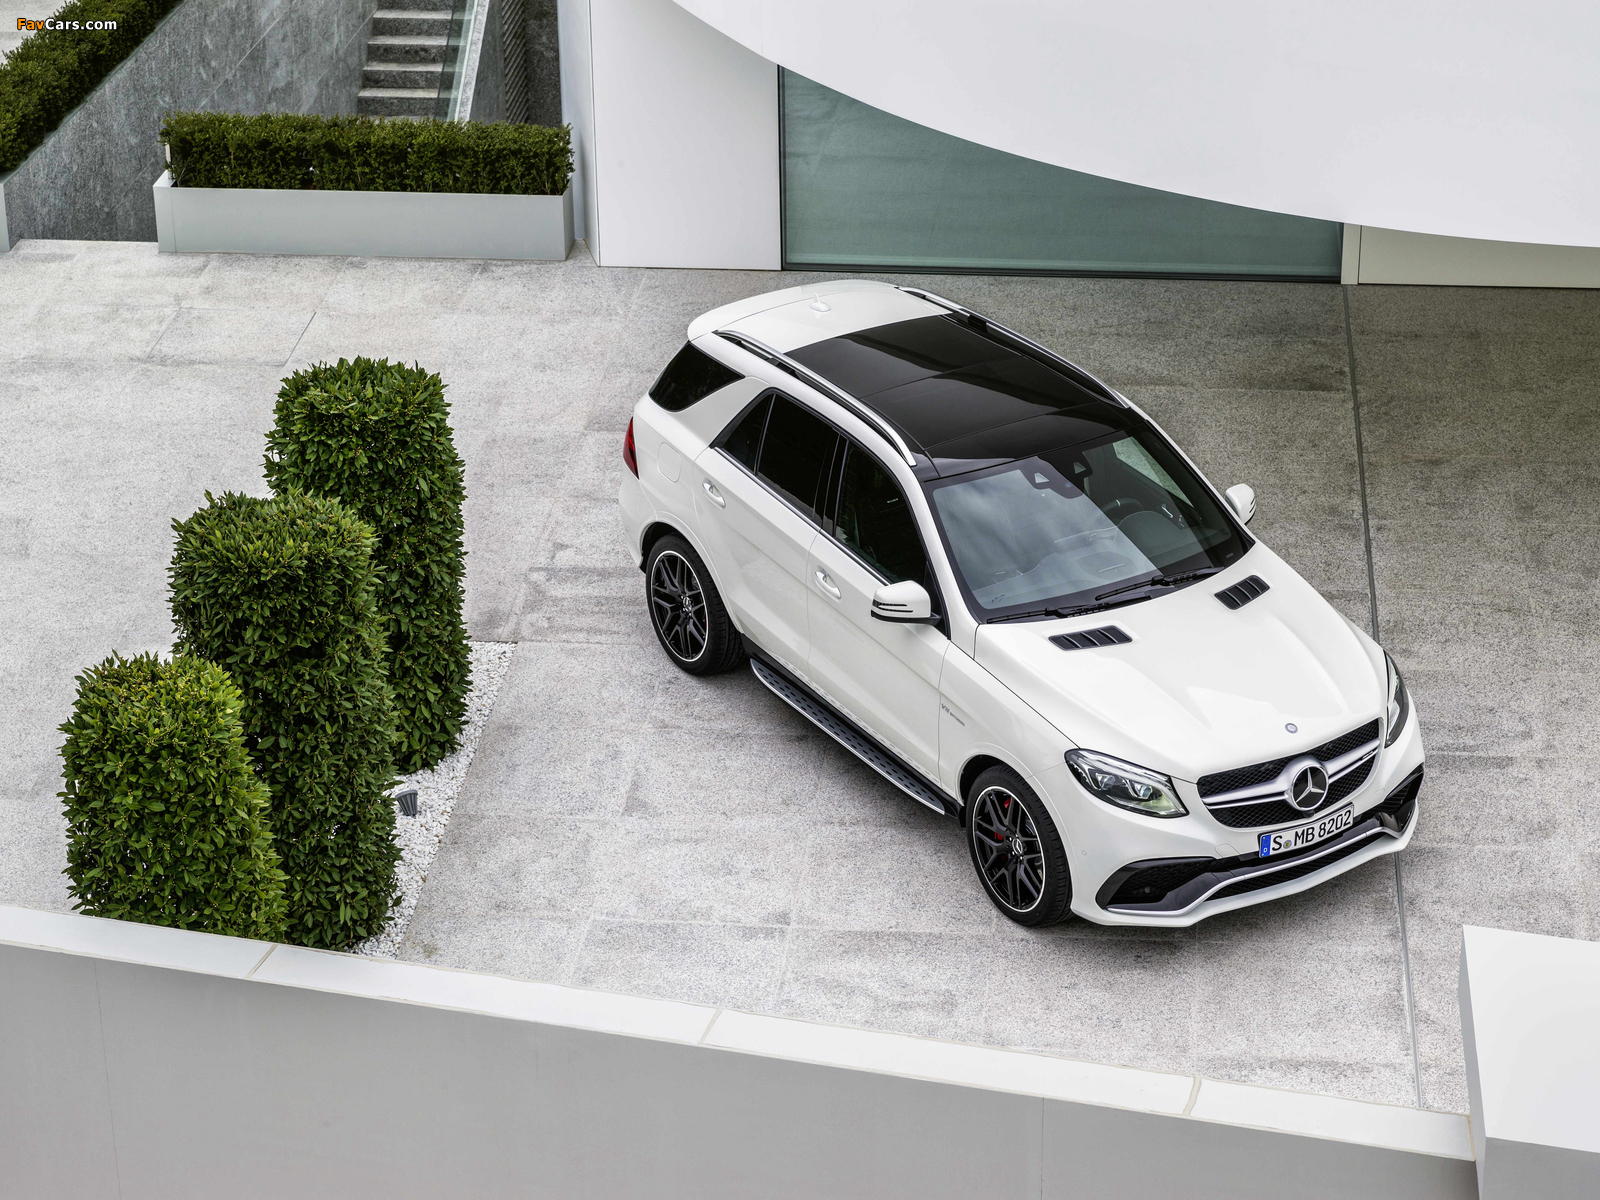 Mercedes-AMG GLE 63 S 4MATIC (W166) 2015 pictures (1600 x 1200)